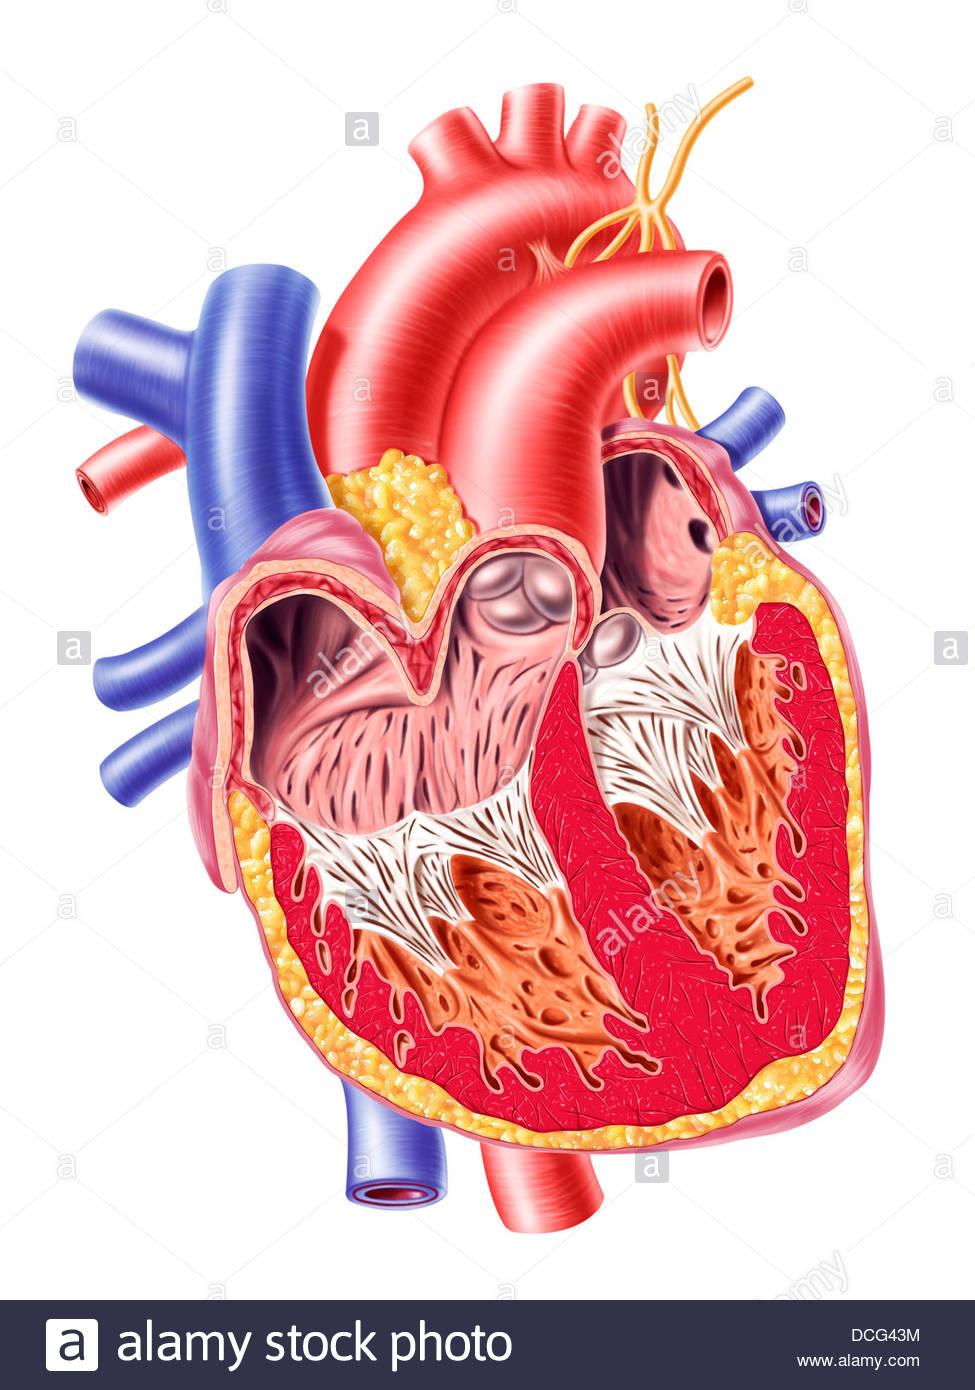 Cardiac Papillary Muscle Stock Photos & Cardiac Papillary Muscle ...